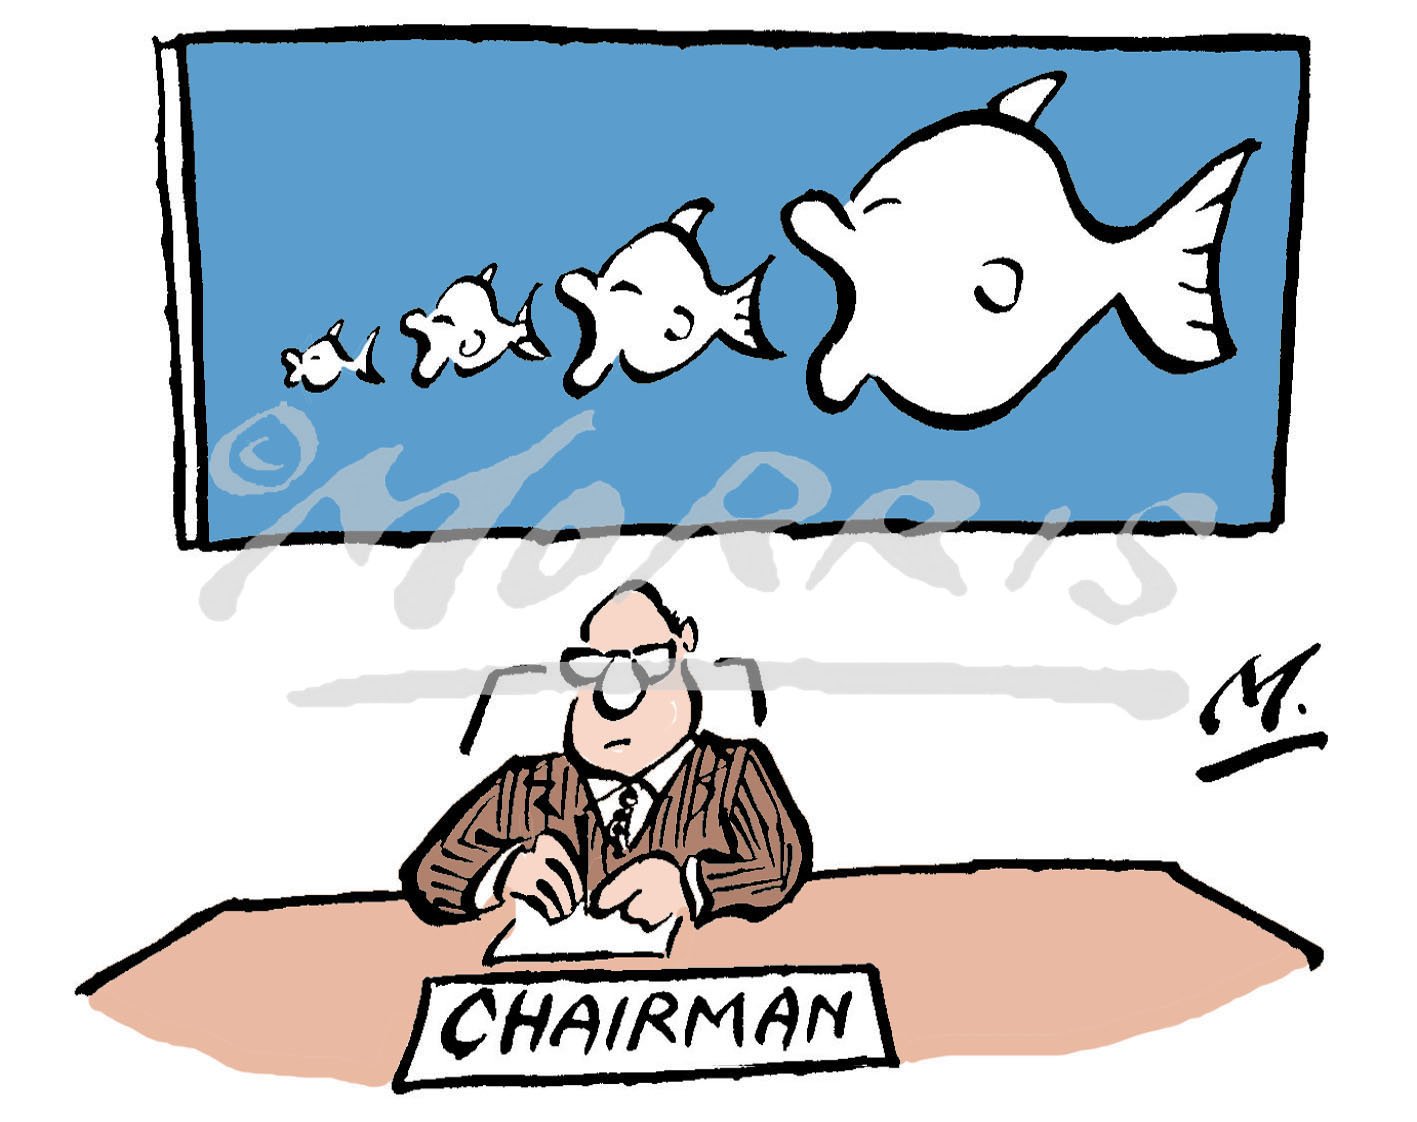 Chairman cartoon, takeover cartoon – Ref: 1474col